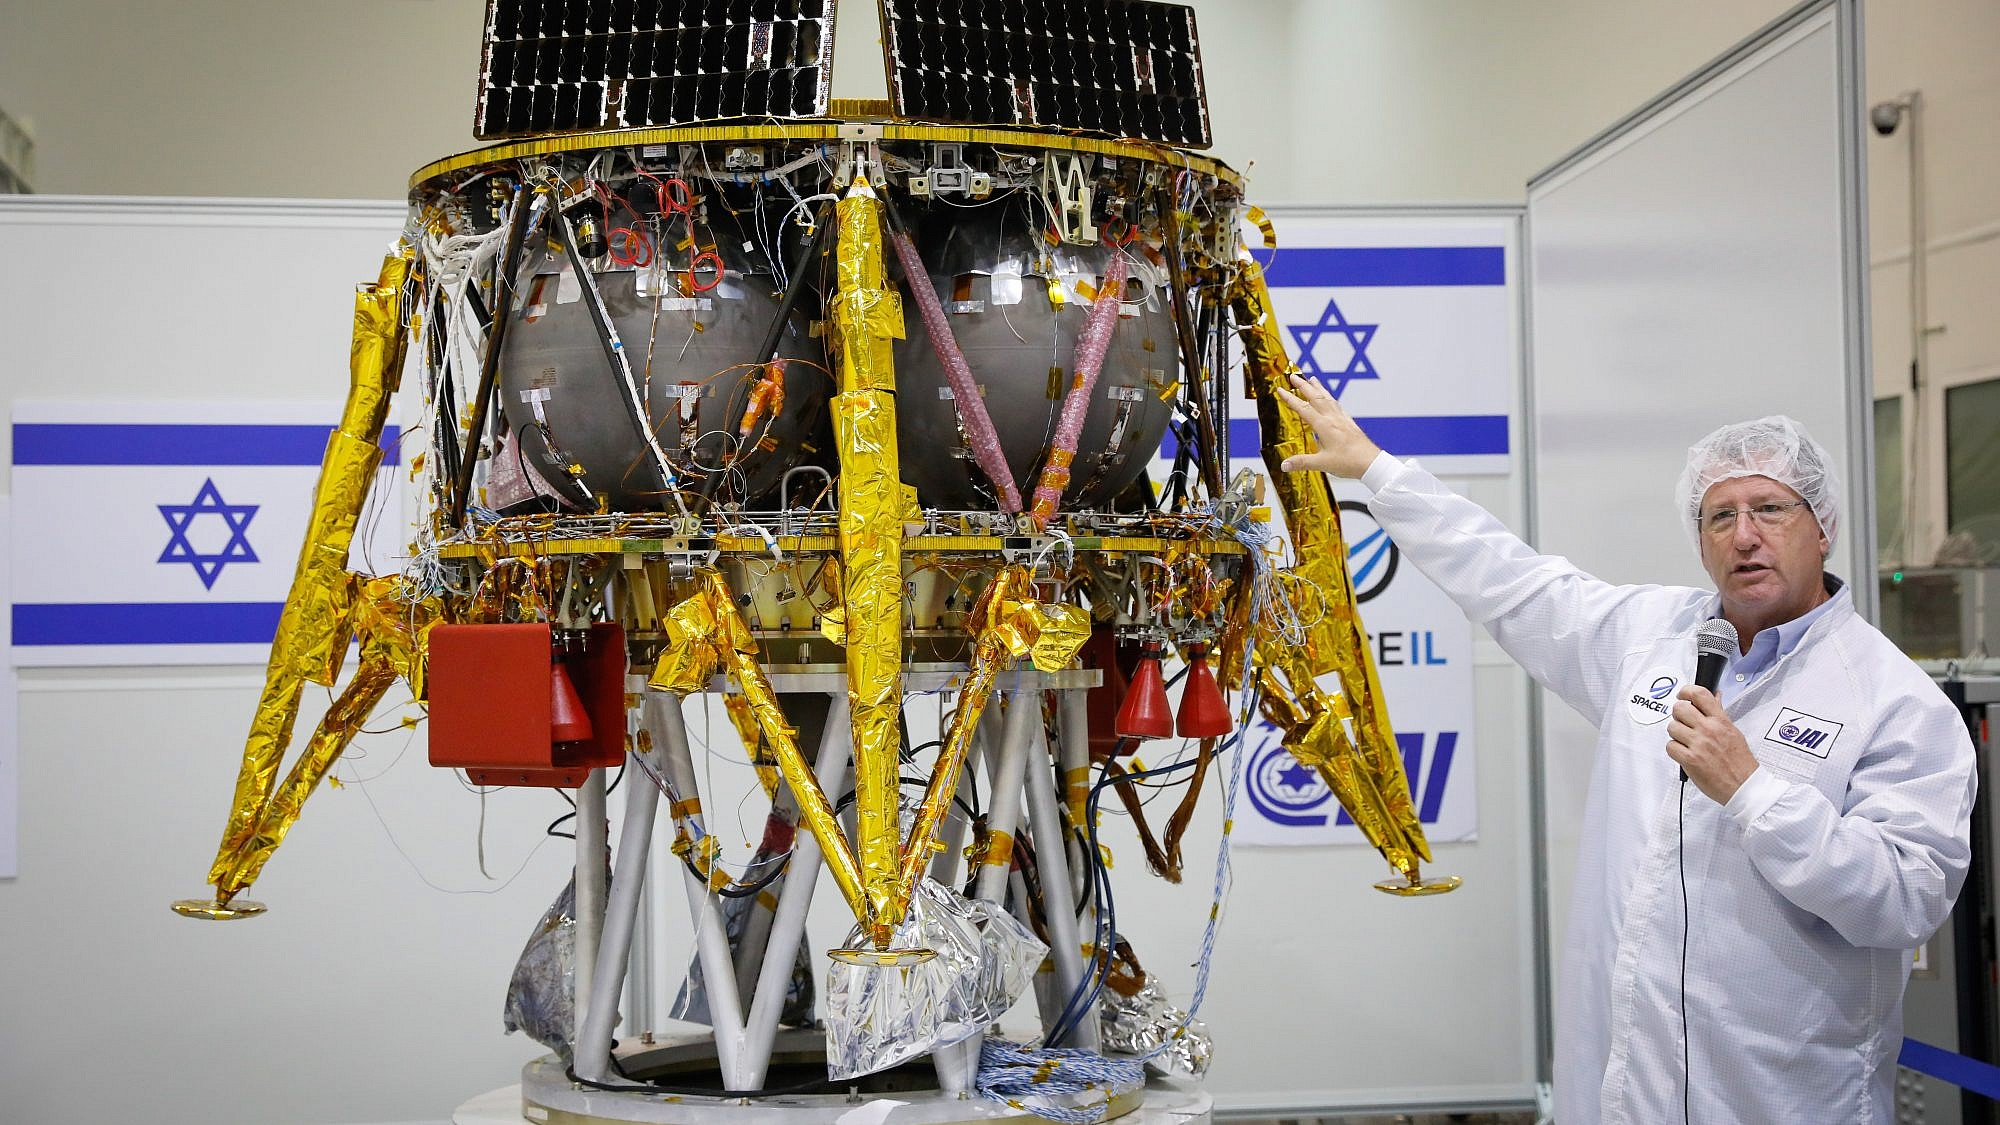 Ofer Doron head of IAI's MBT Space Division speaks near the Israeli spacecraft of the SpaceIL team's spacecraft during a press conference at the Israel Aerospace facility in Yahud